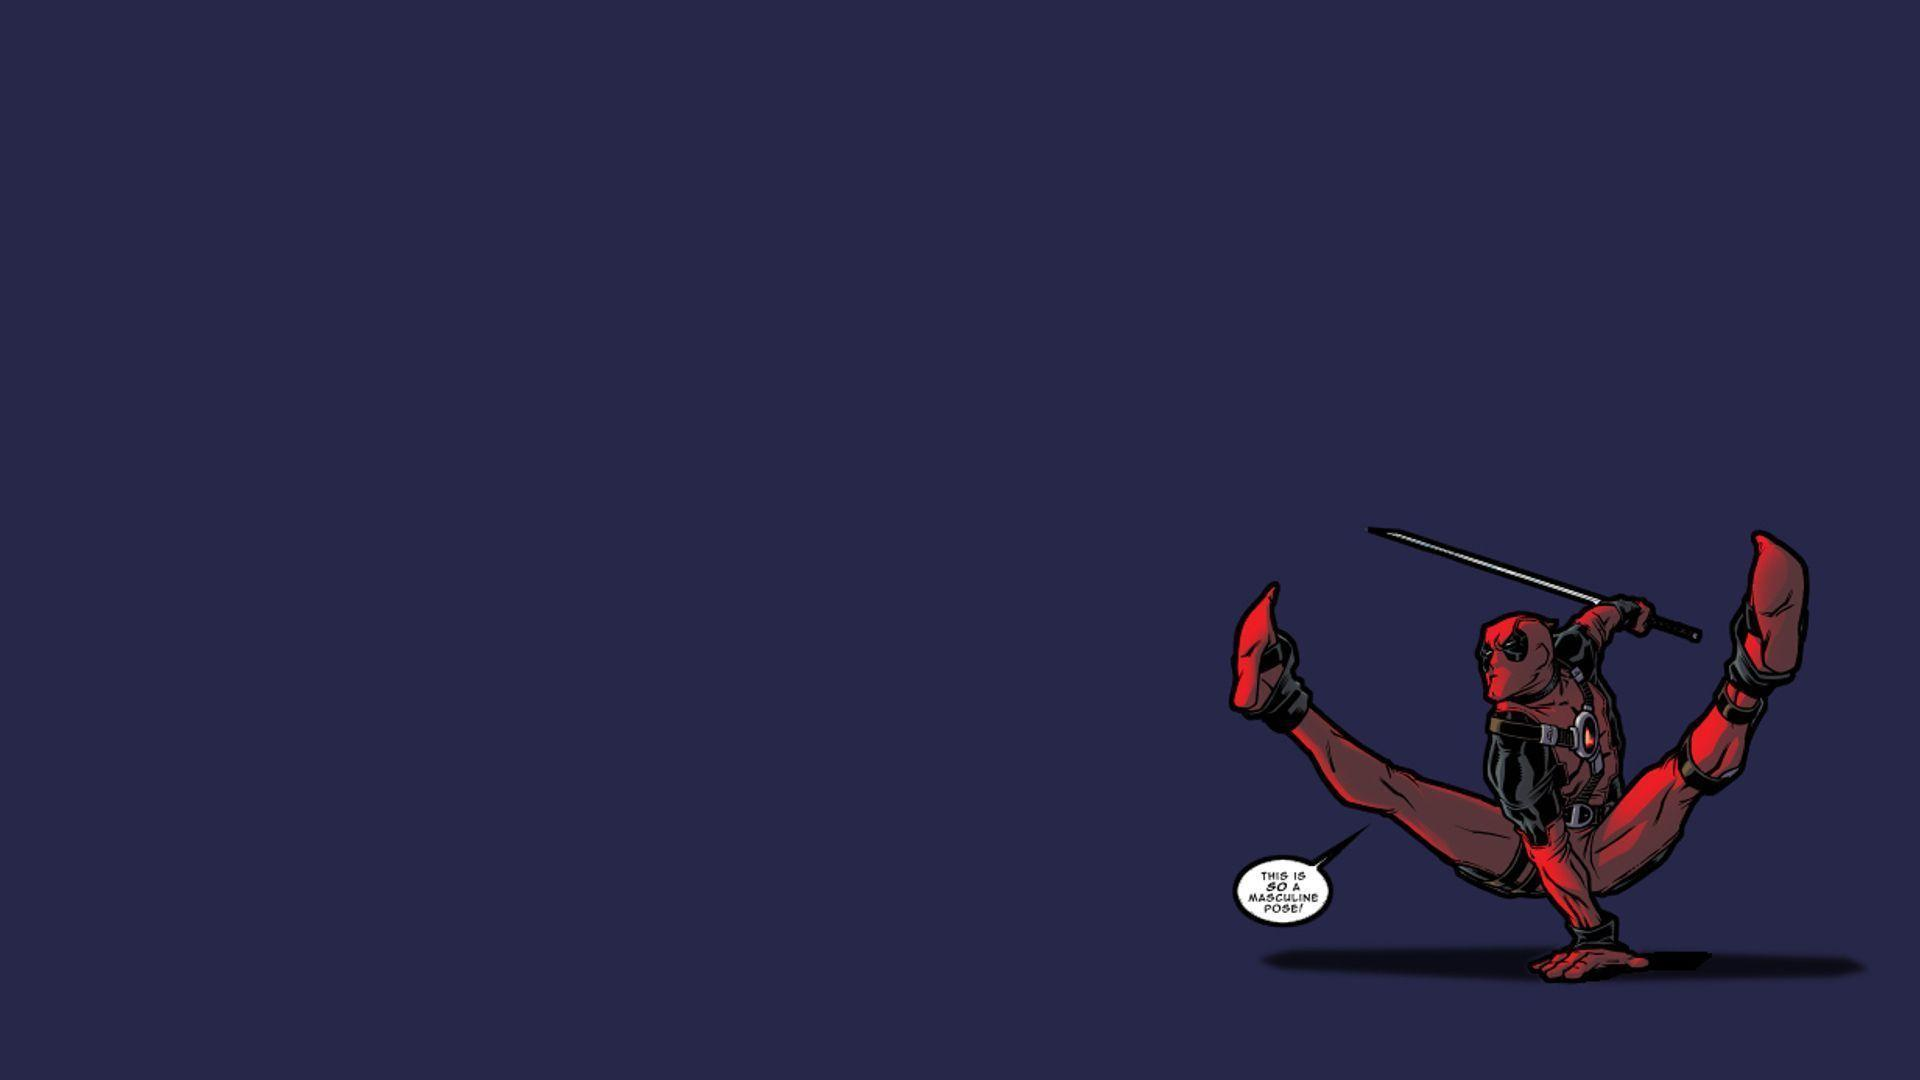 Deadpool Wallpapers HD 1920x1080